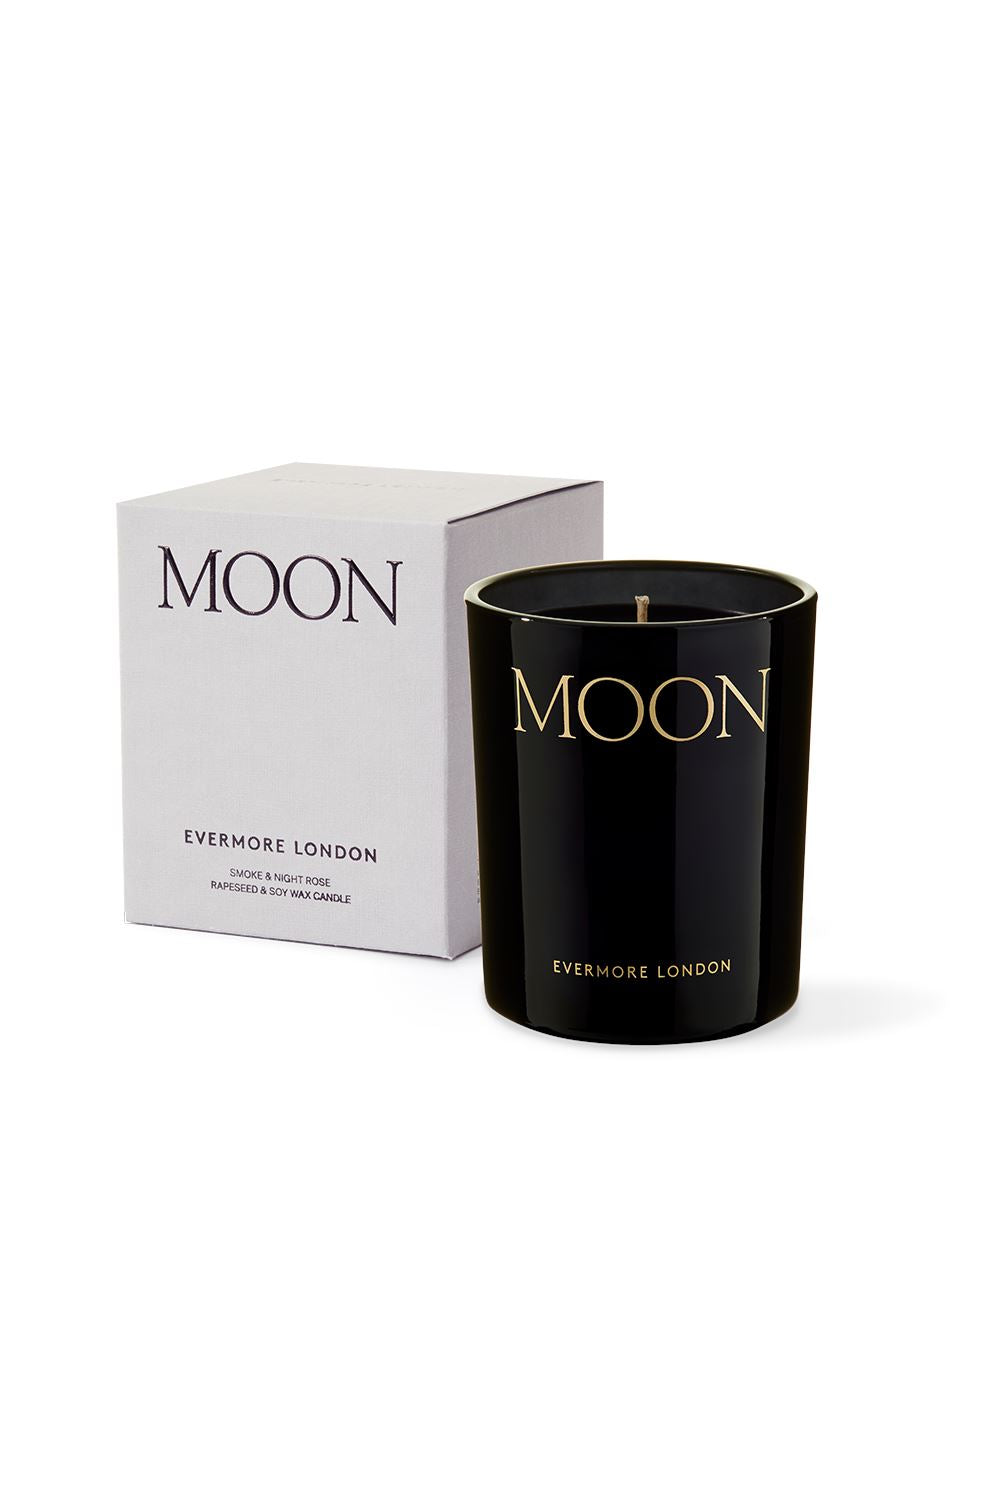 Moon Scented Candle - Smoke & Night Rose Candles Evermore